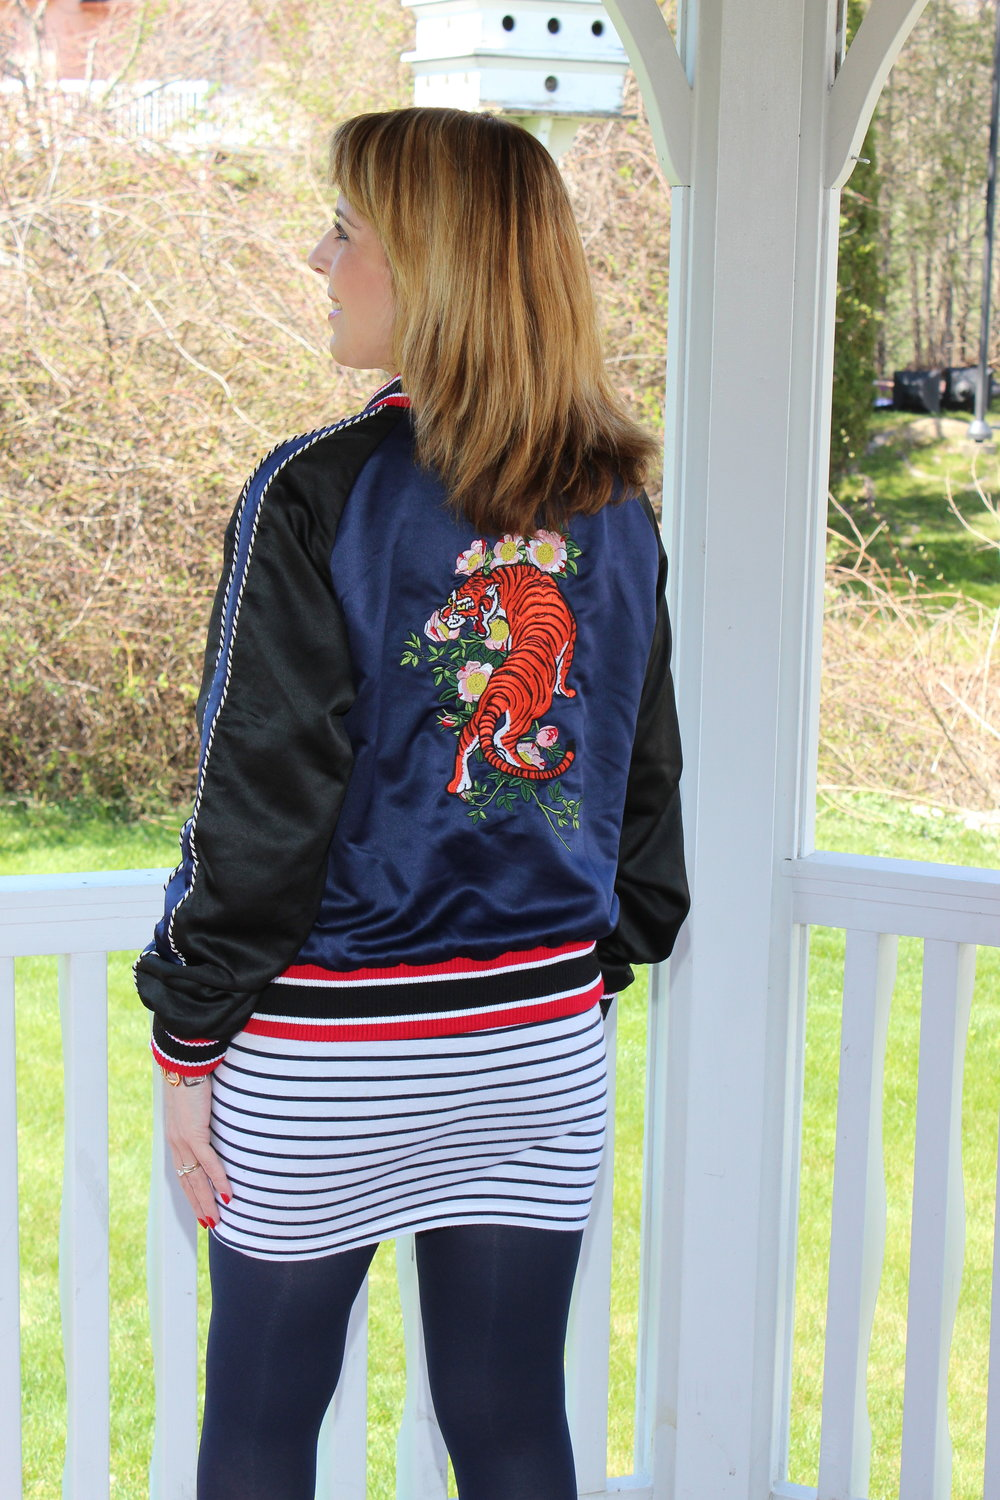 https://www.knvaz.com/products/jane-embroidered-tiger-bomber